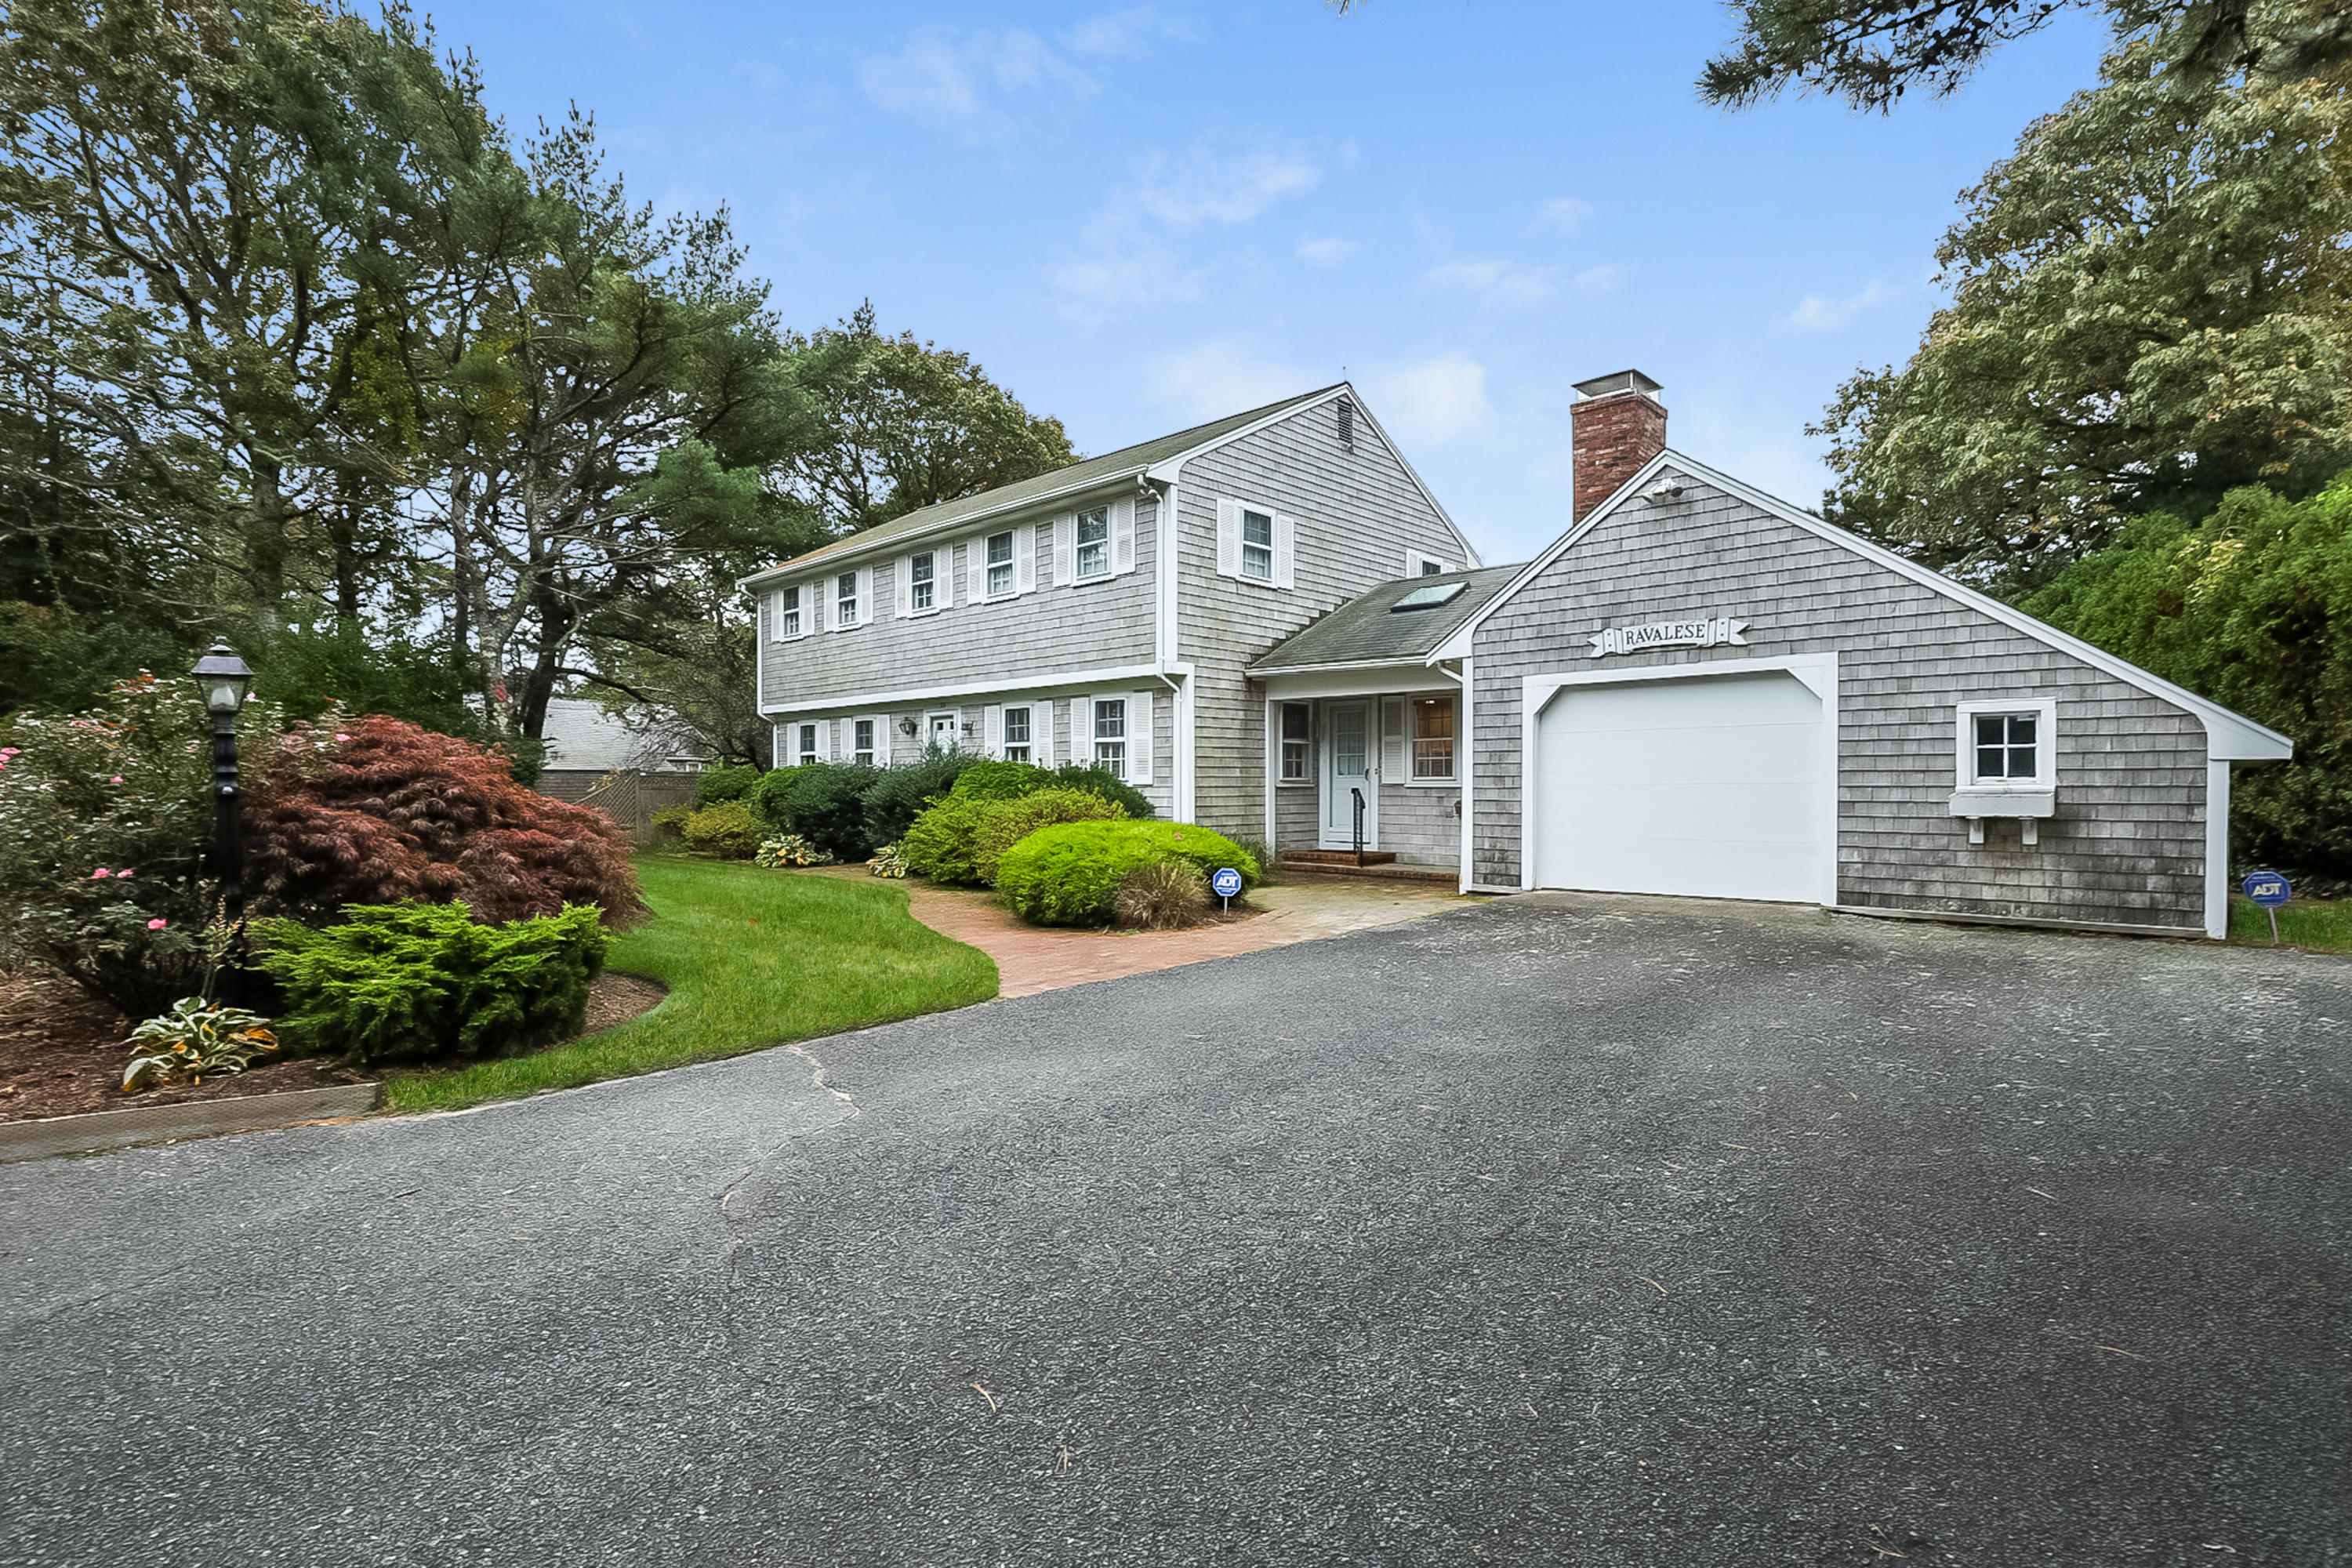 27 Egg Harbor Road, West Yarmouth MA, 02673 details